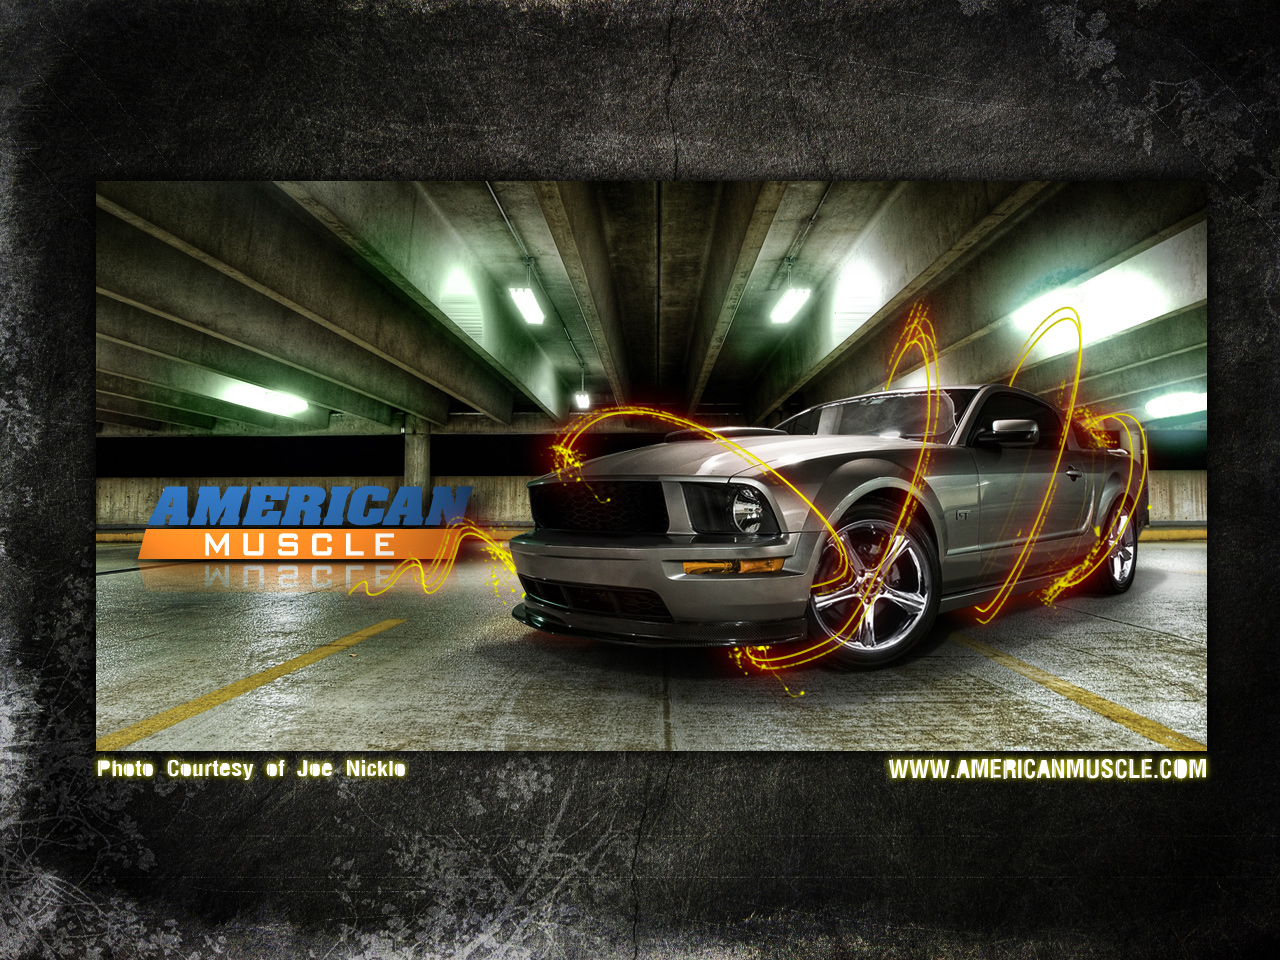 Ford Mustang Wallpapers & Mustang Backgrounds | AmericanMuscle.com